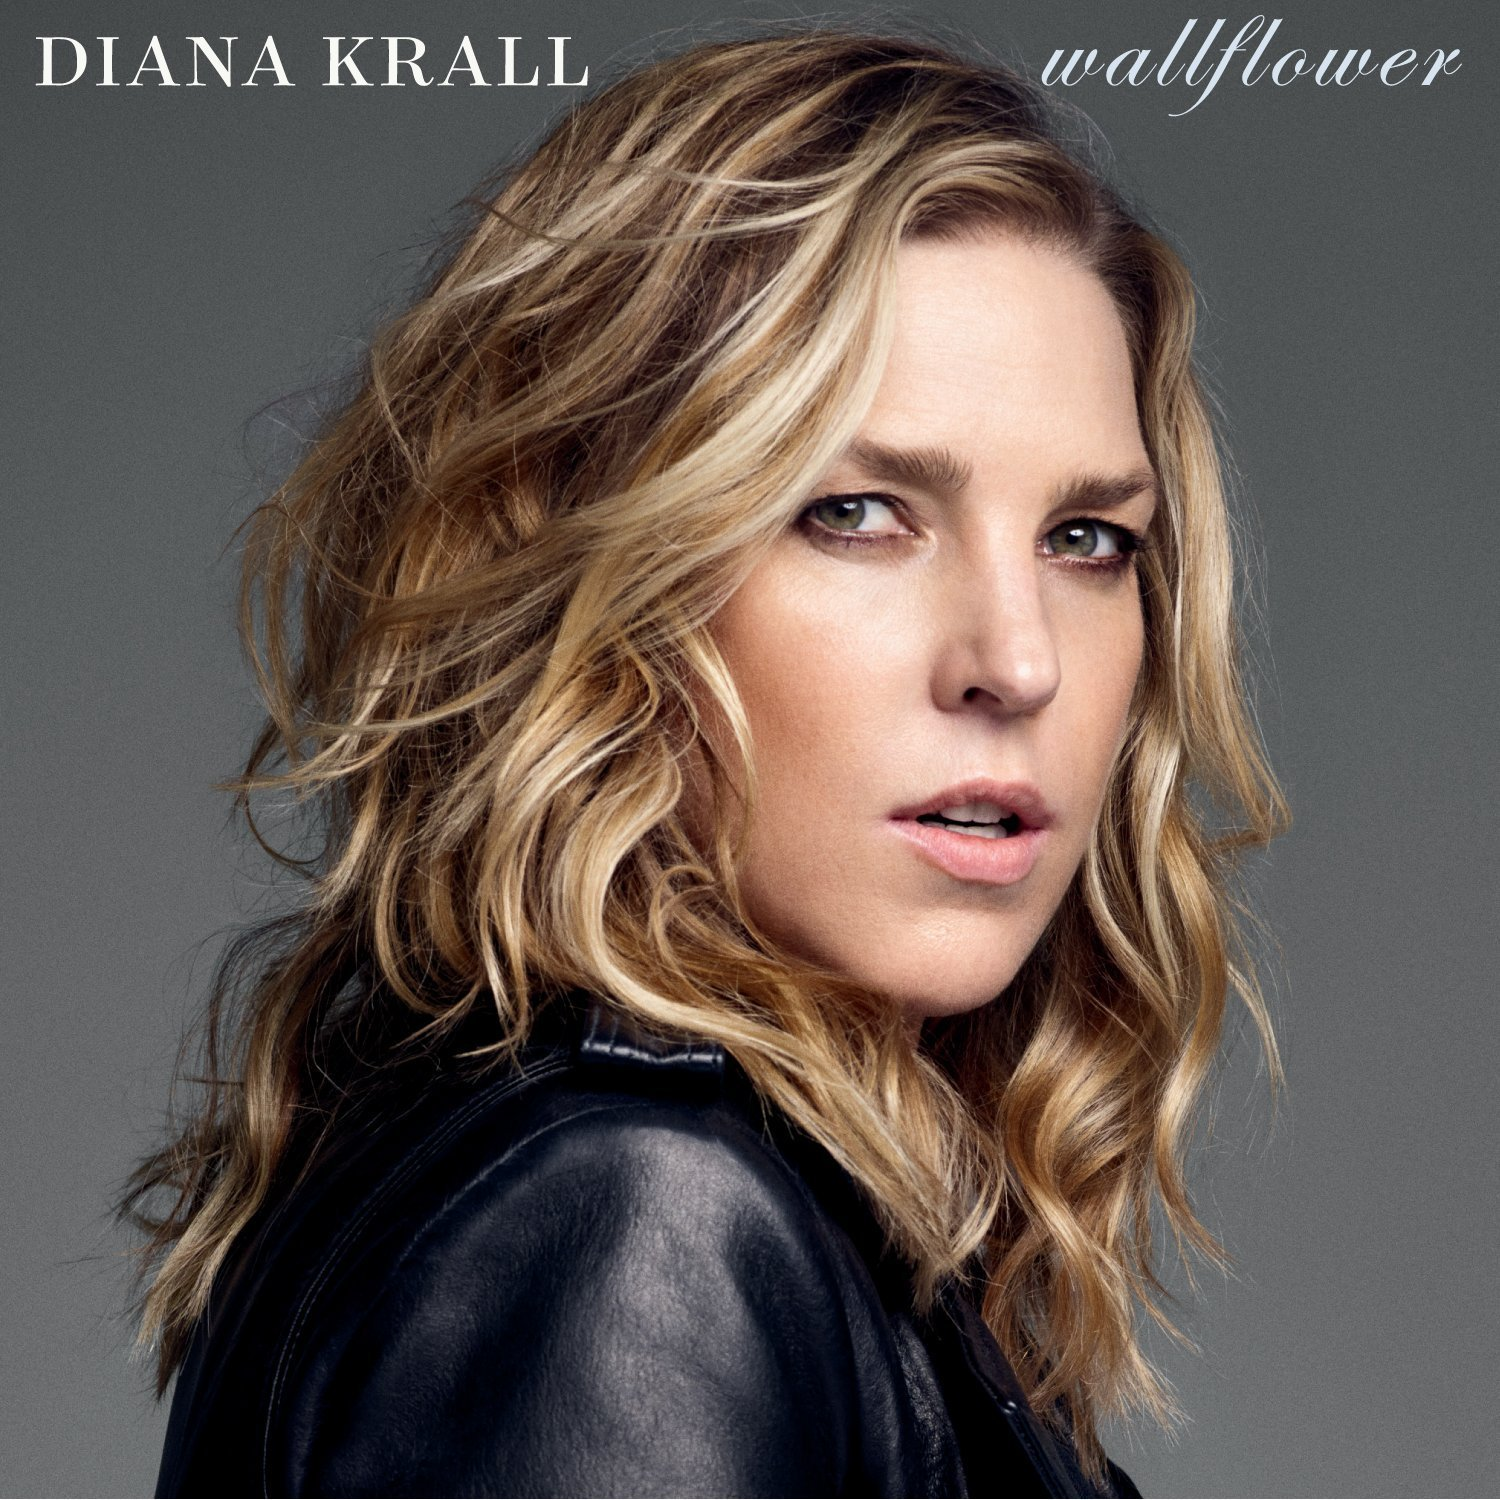 Diana Krall – Wallflower